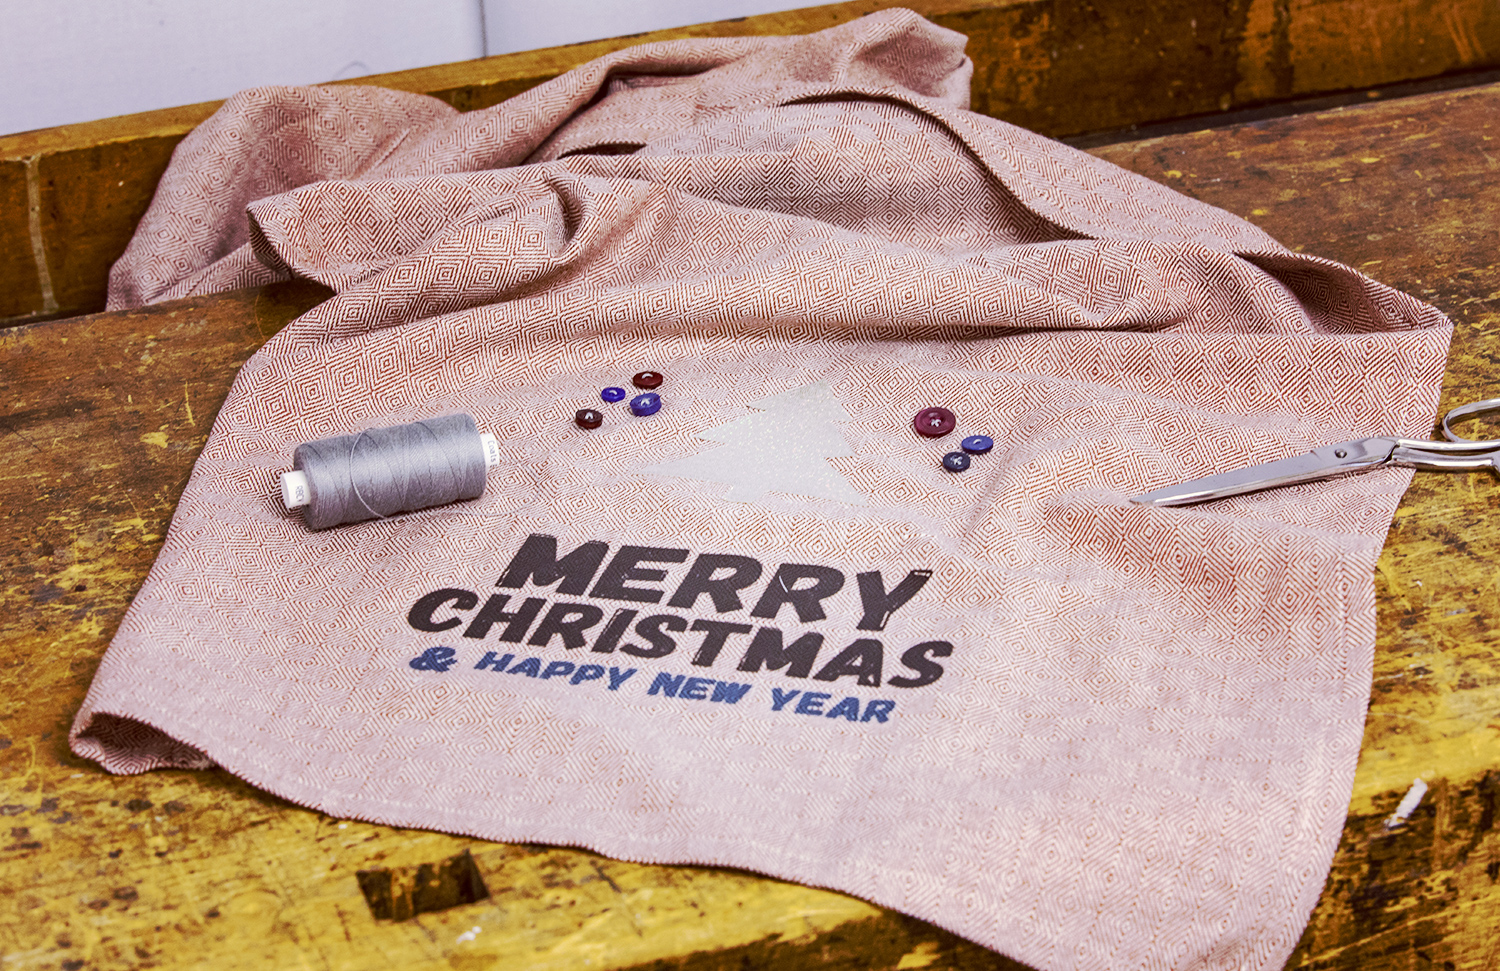 Table runner with Merry Christmas print